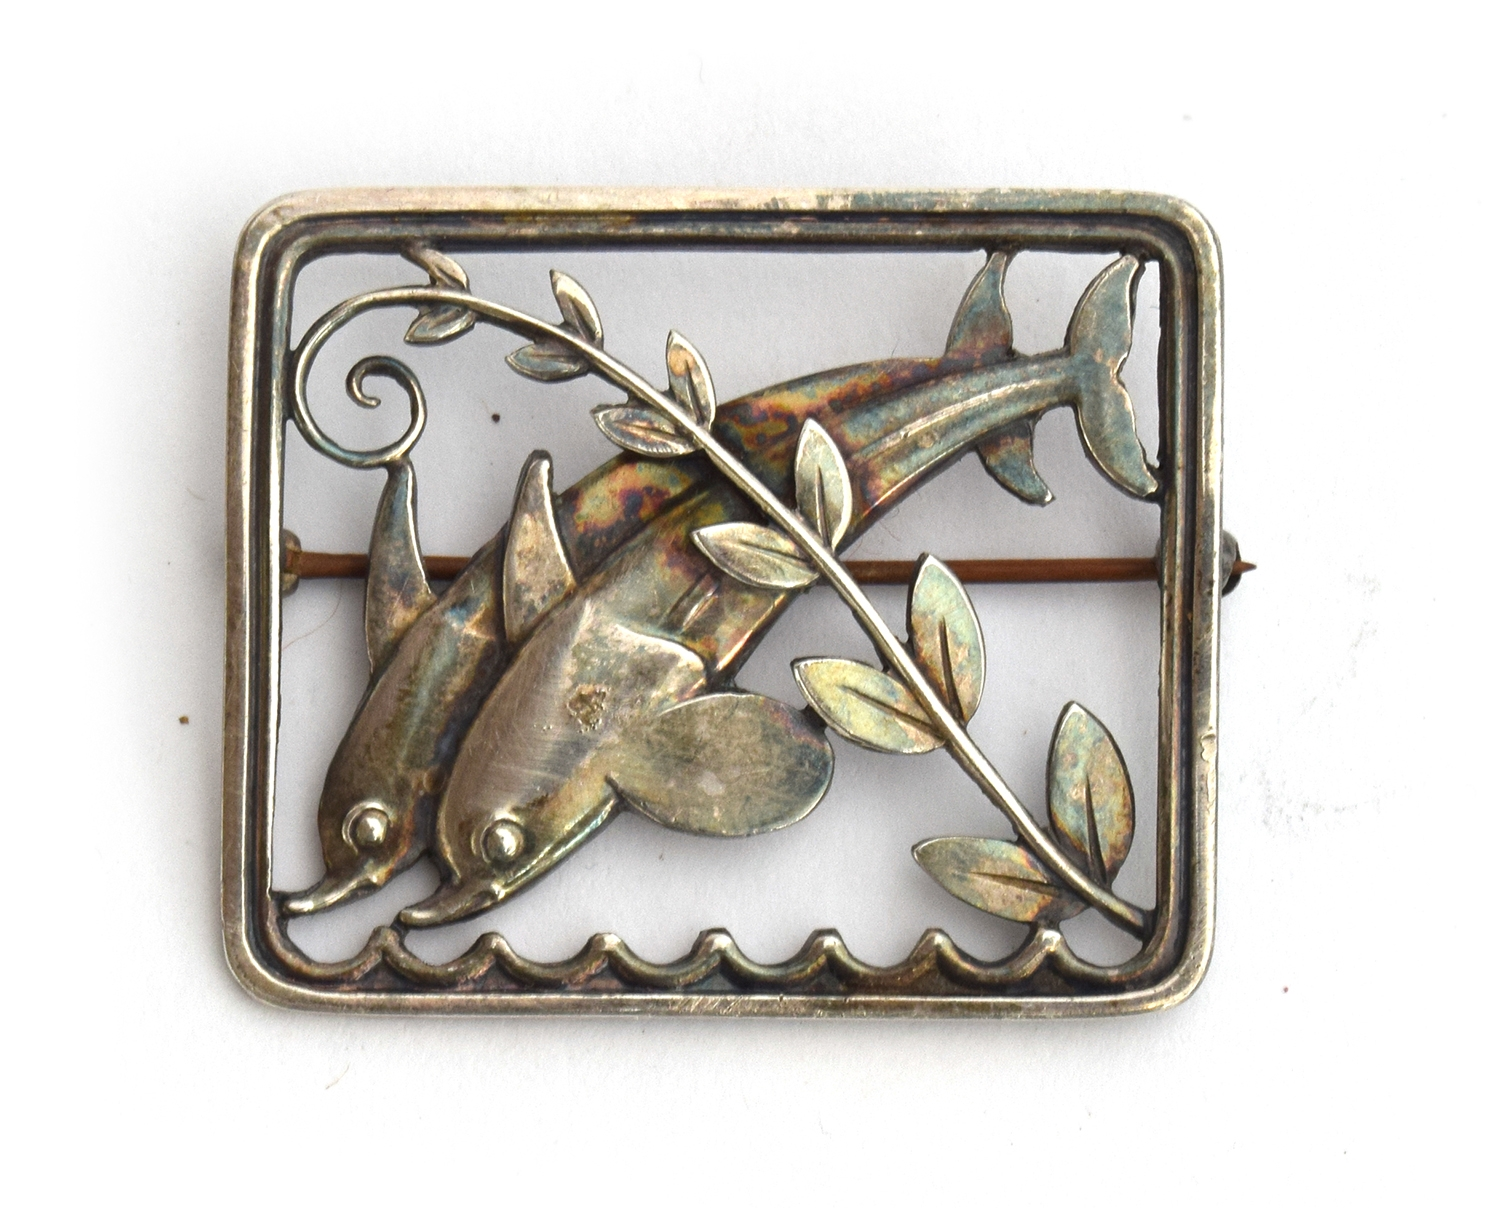 A c.1940s Georg Jensen sterling silver brooch featuring two dolphins designed by Arno Malinowski,